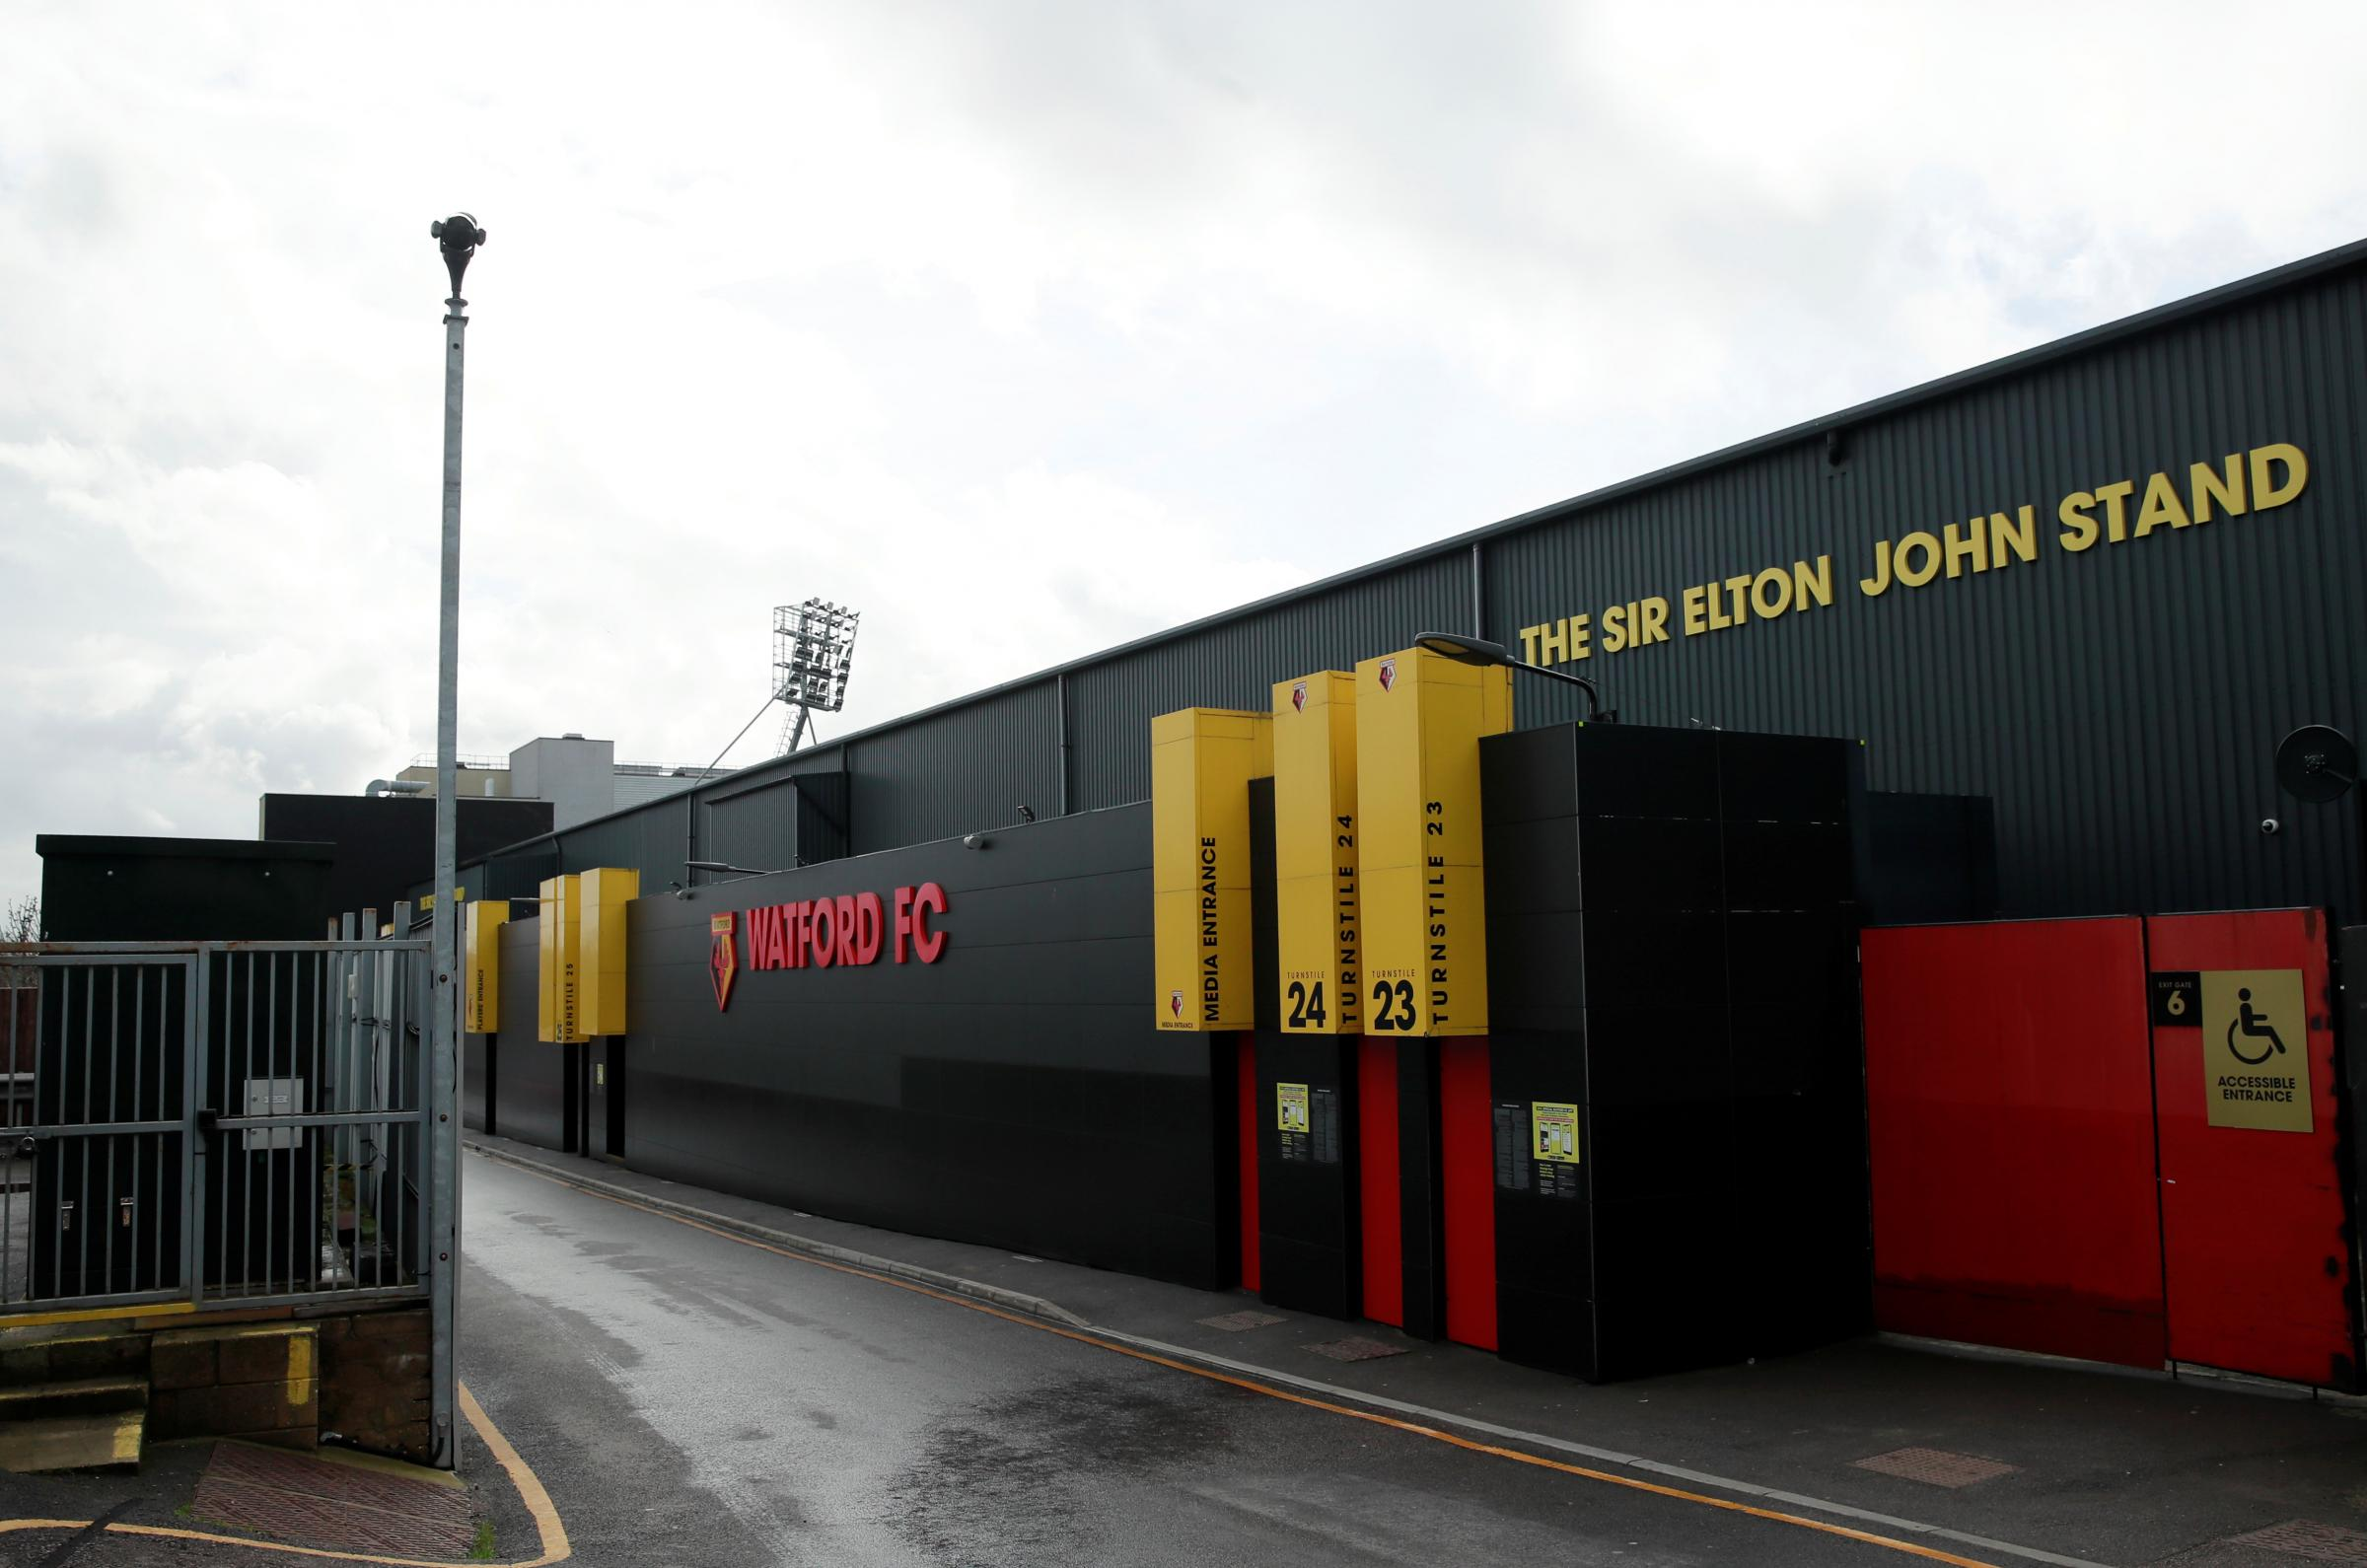 The Premier League should have been postponed earlier due to the coronavirus outbreak according to the former Watford transfer consultant Nicola Salerno